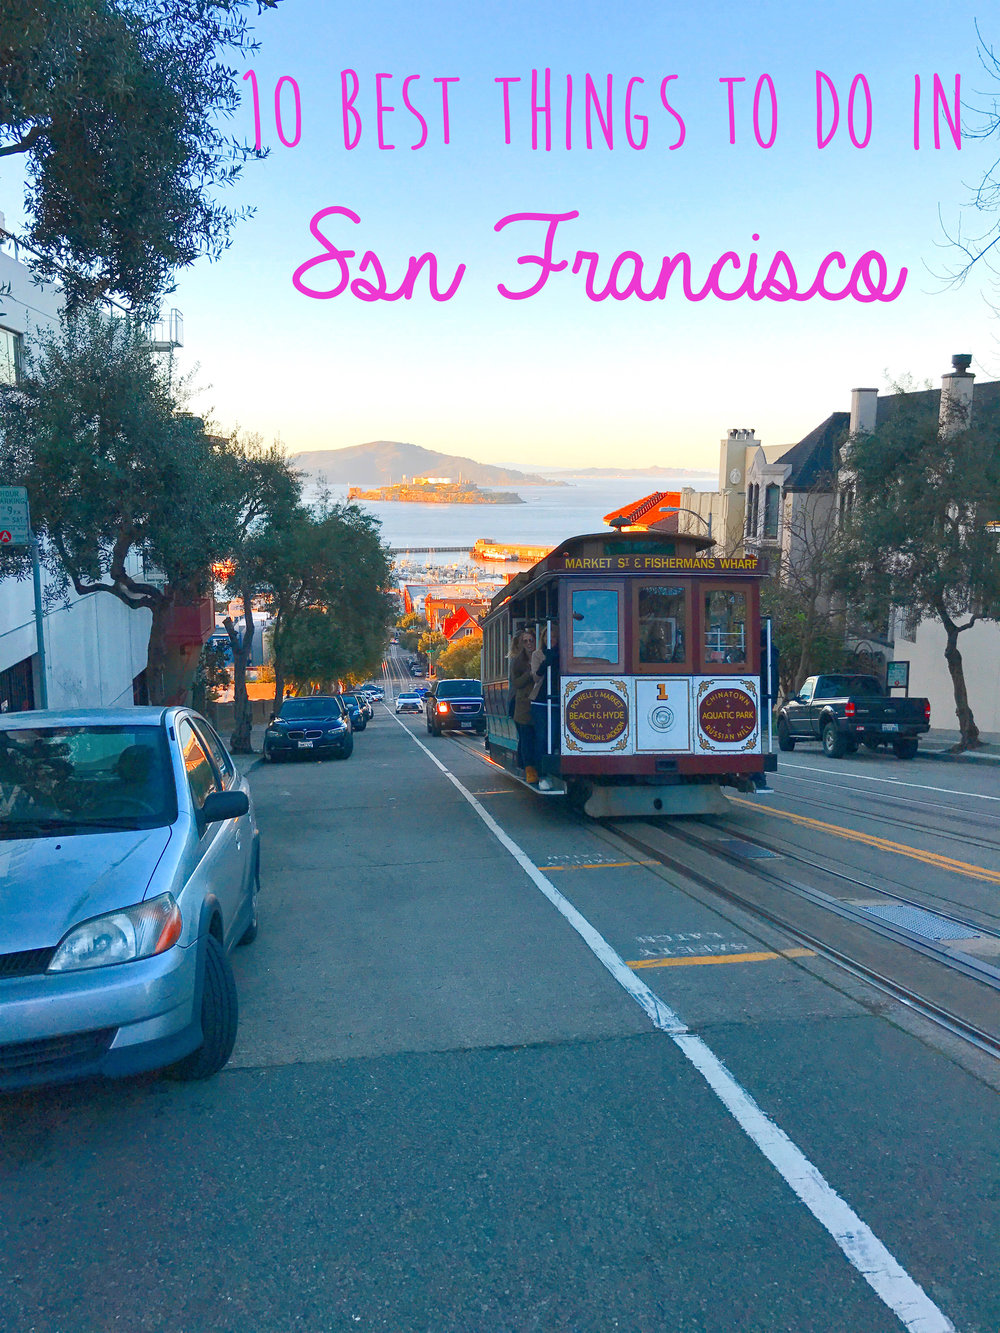 10 Best Things to do in San Francisco - Wandering Jokas Travel and Ice Cream Blog